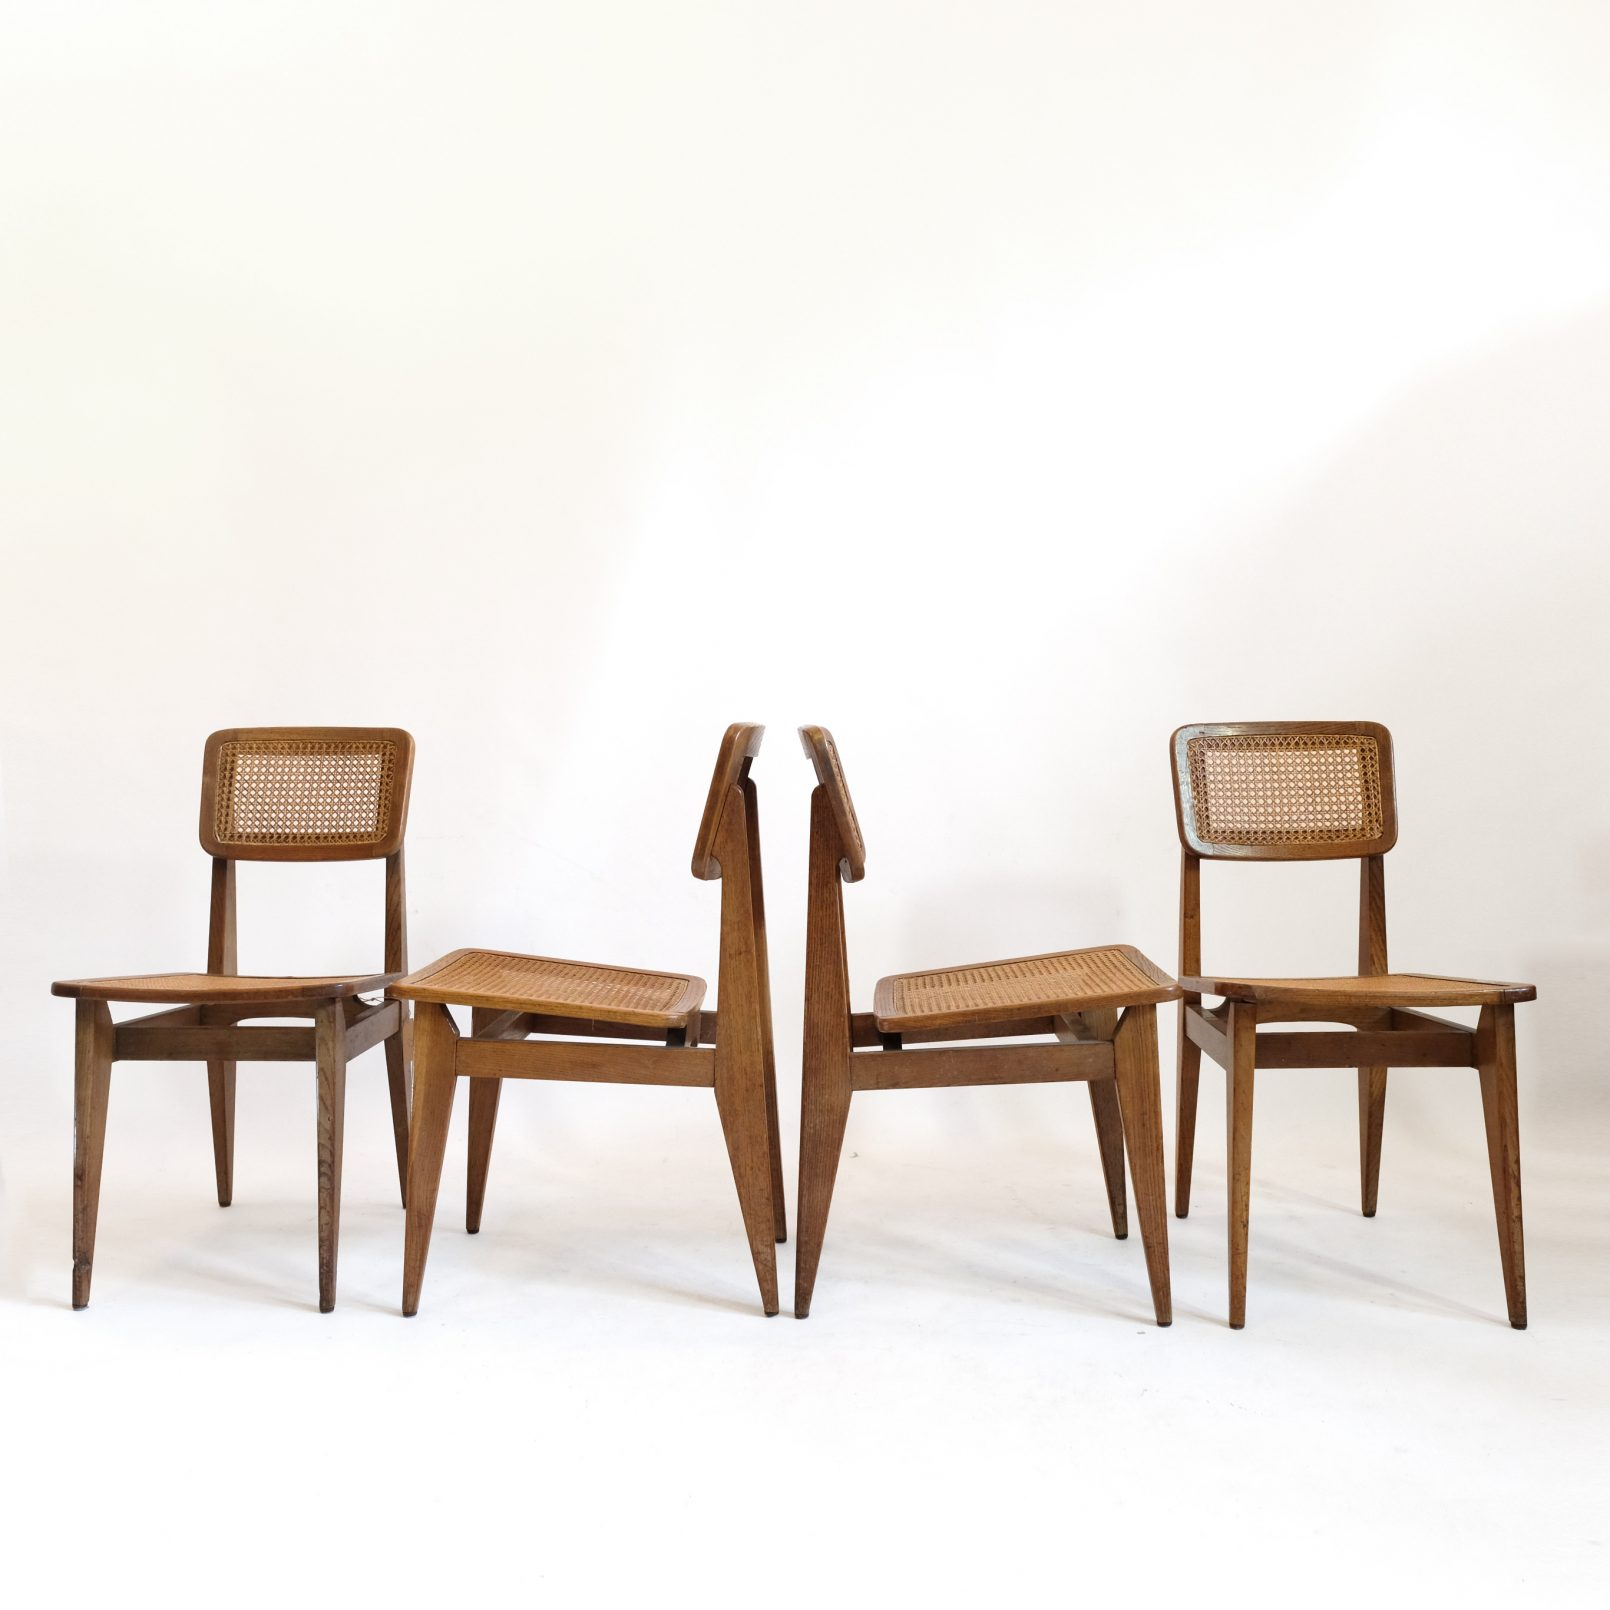 Marcel Gascoin, set of 4 C cane chairs, Arhec, 1950's.